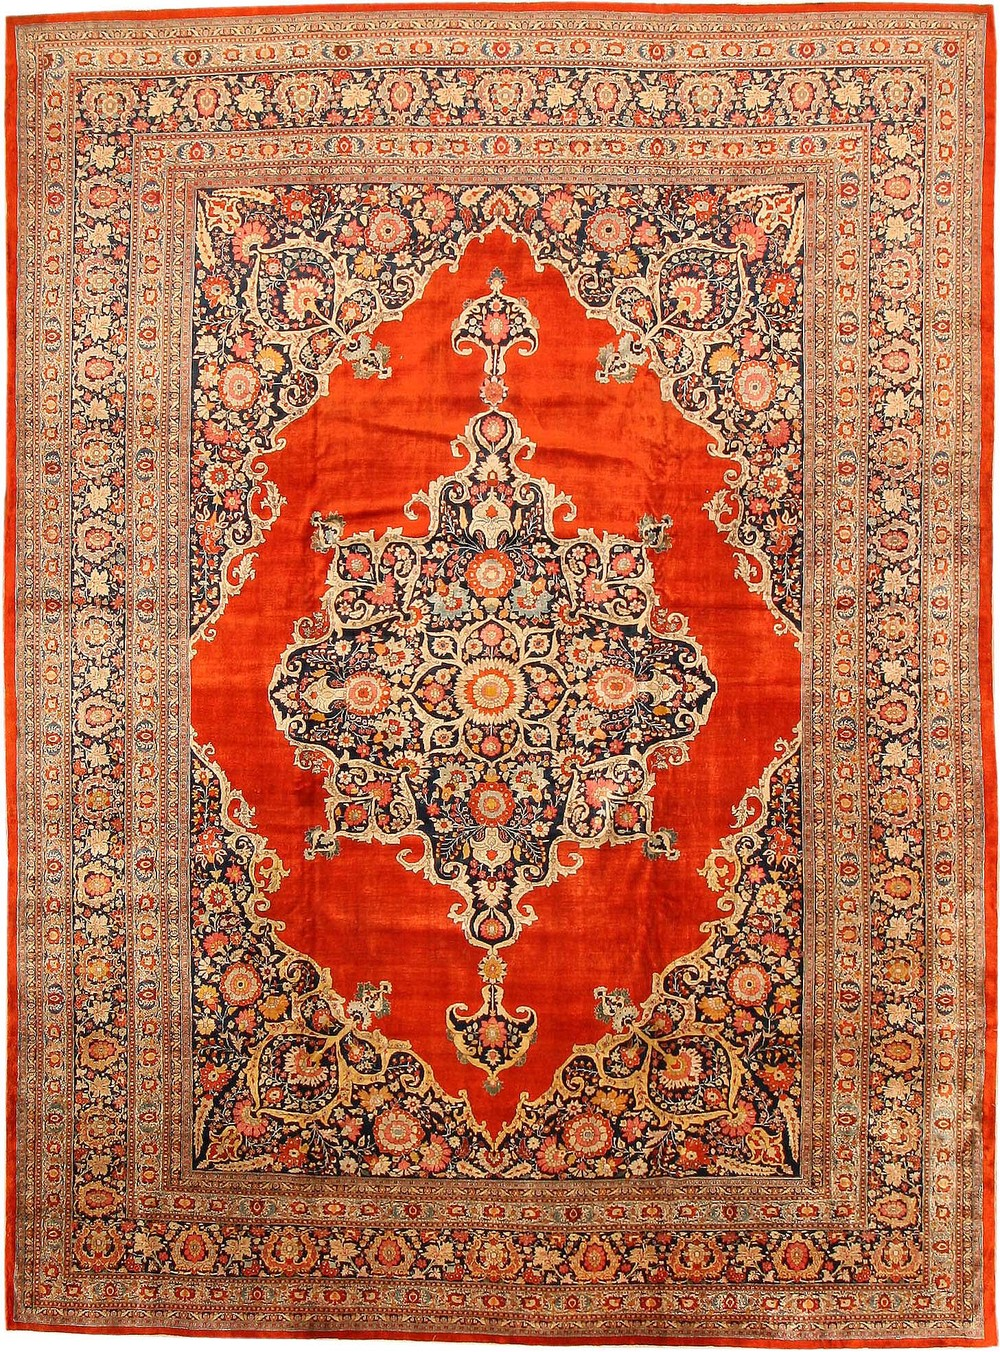 Antique_Tabriz_Persian_iran_Rugs__79912.jpg